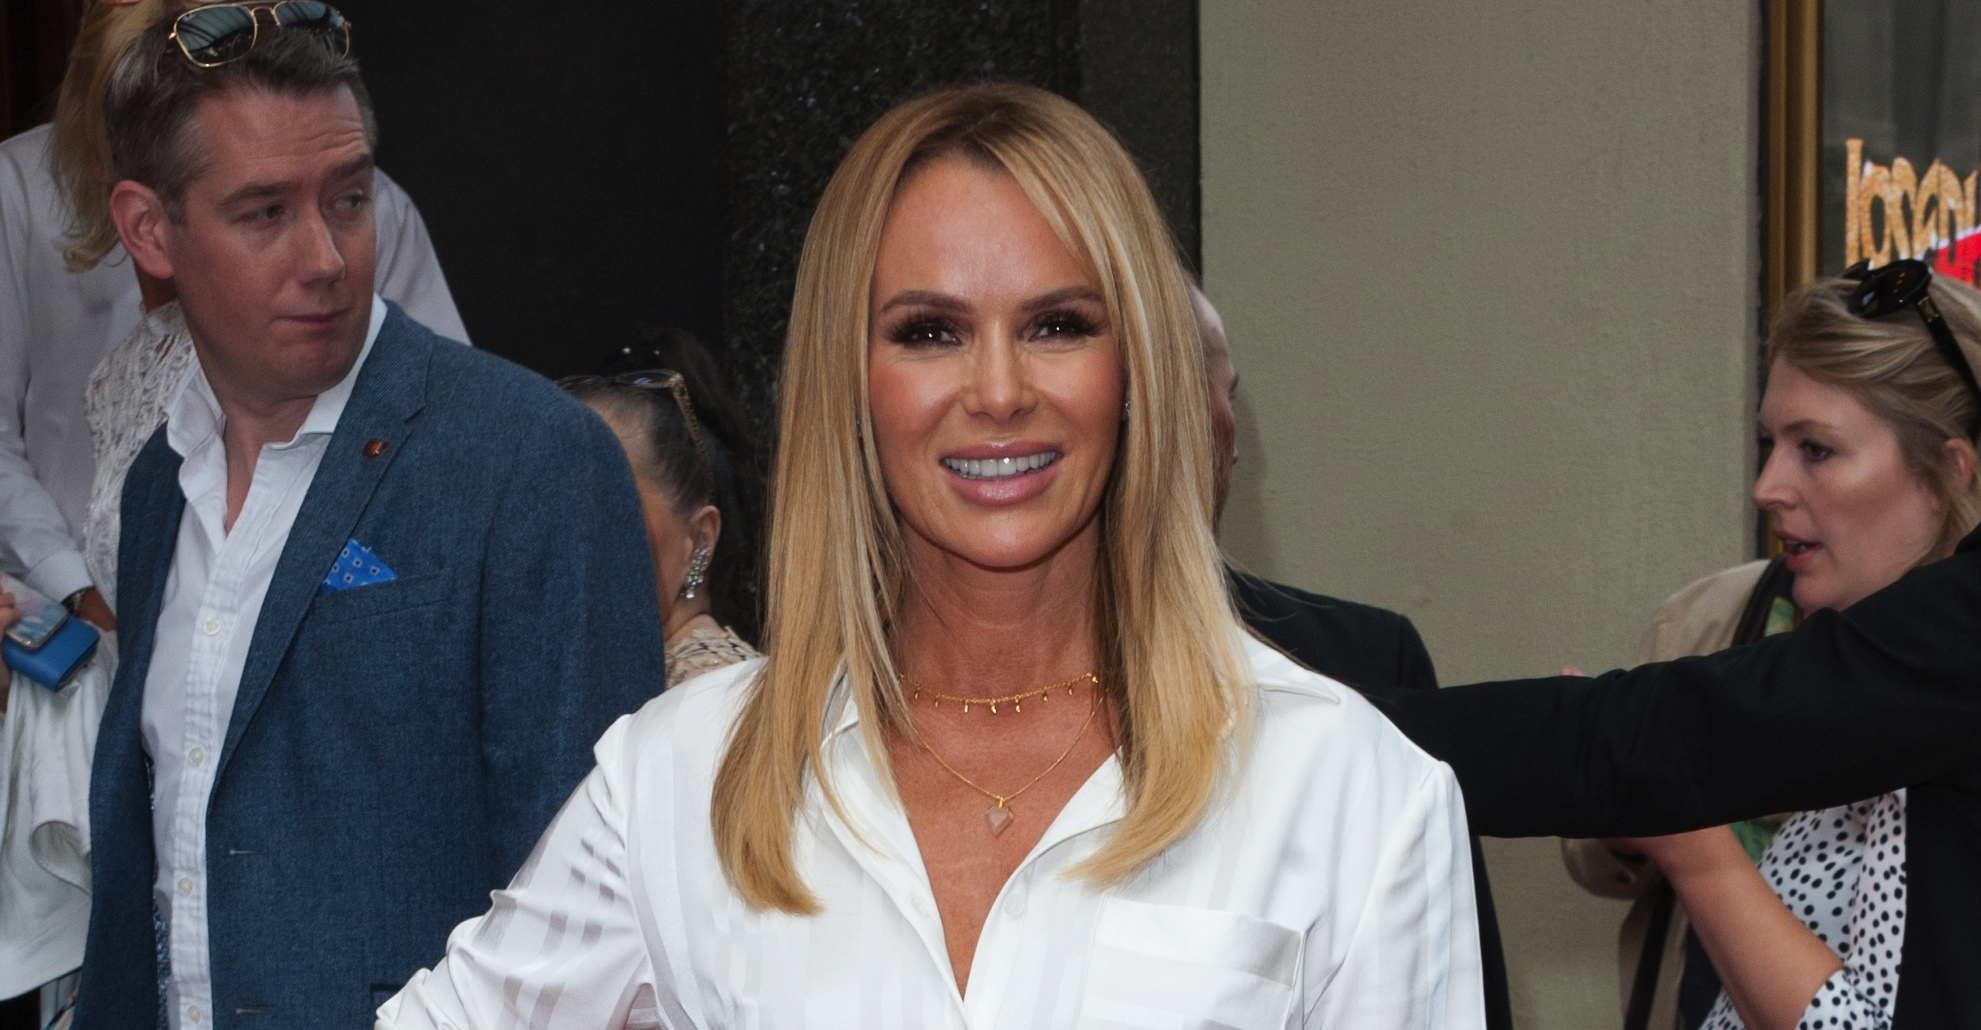 Amanda Holden shares photo of herself in the recording studio as she embarks on new career